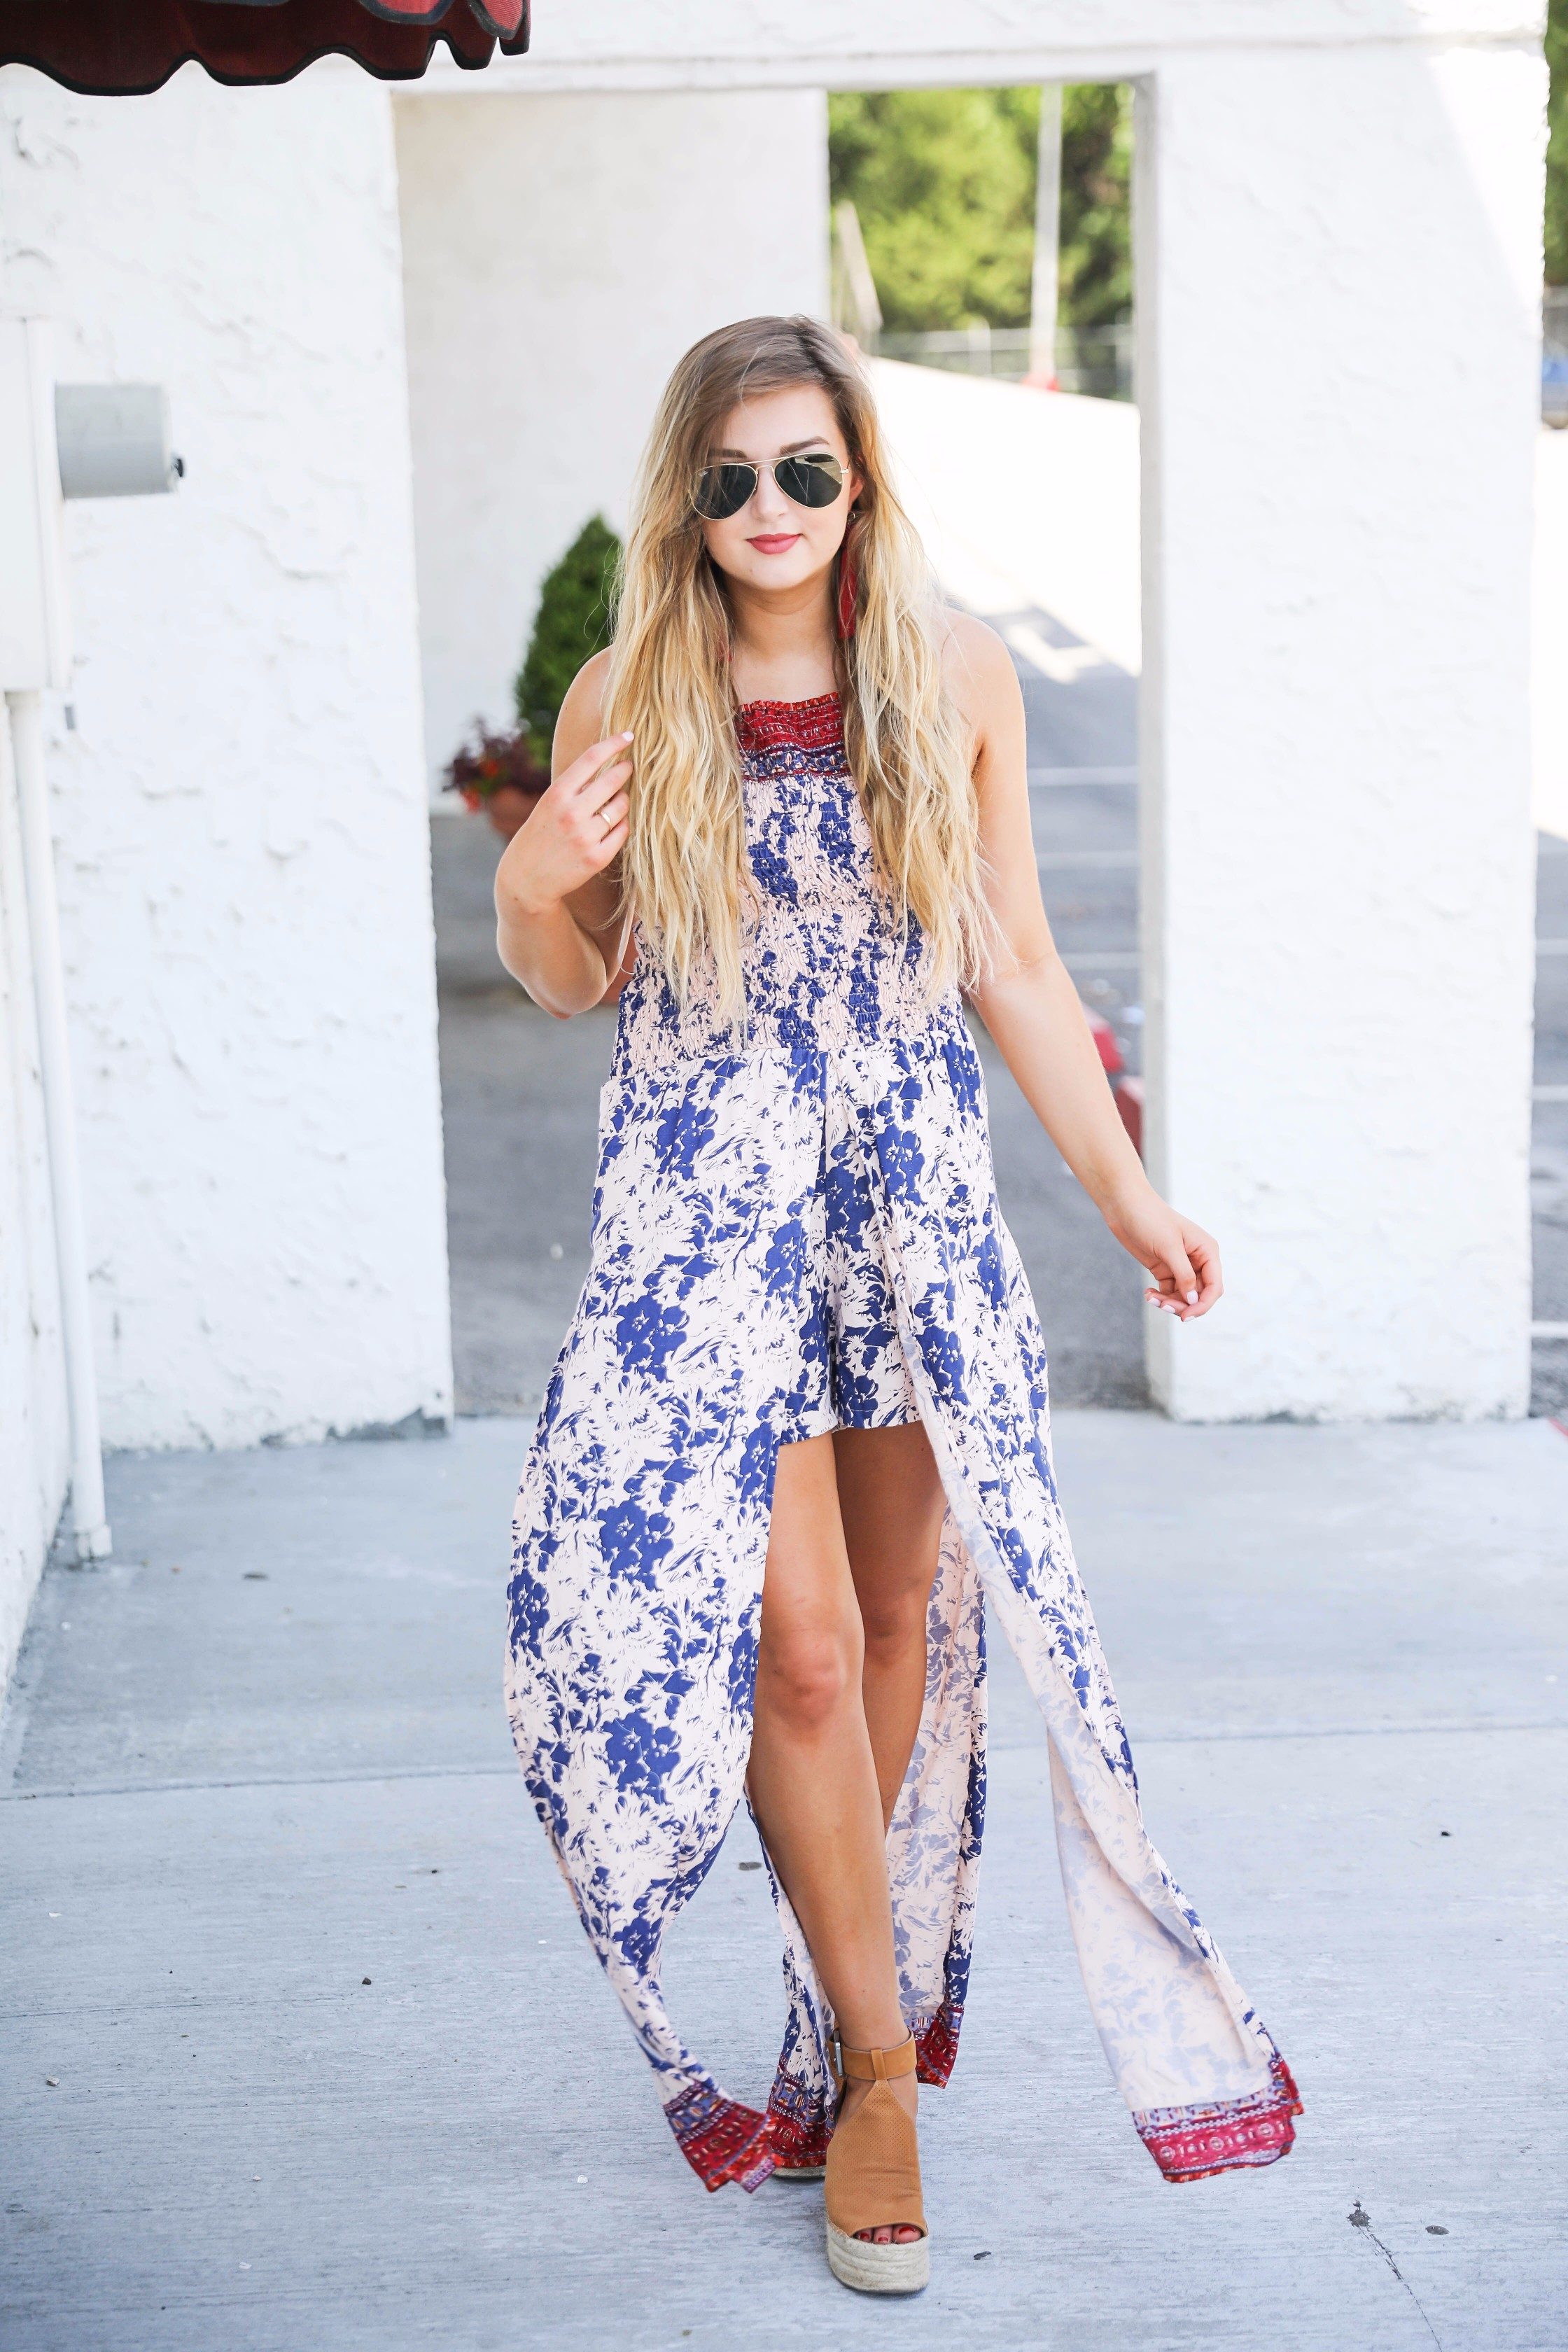 Boho halter romper maxi combo with beachy hair and a bold lip! I also paired these fun burgundy tassel earrings with the look. By fashion blogger lauren lindmakr on daily dose of charm